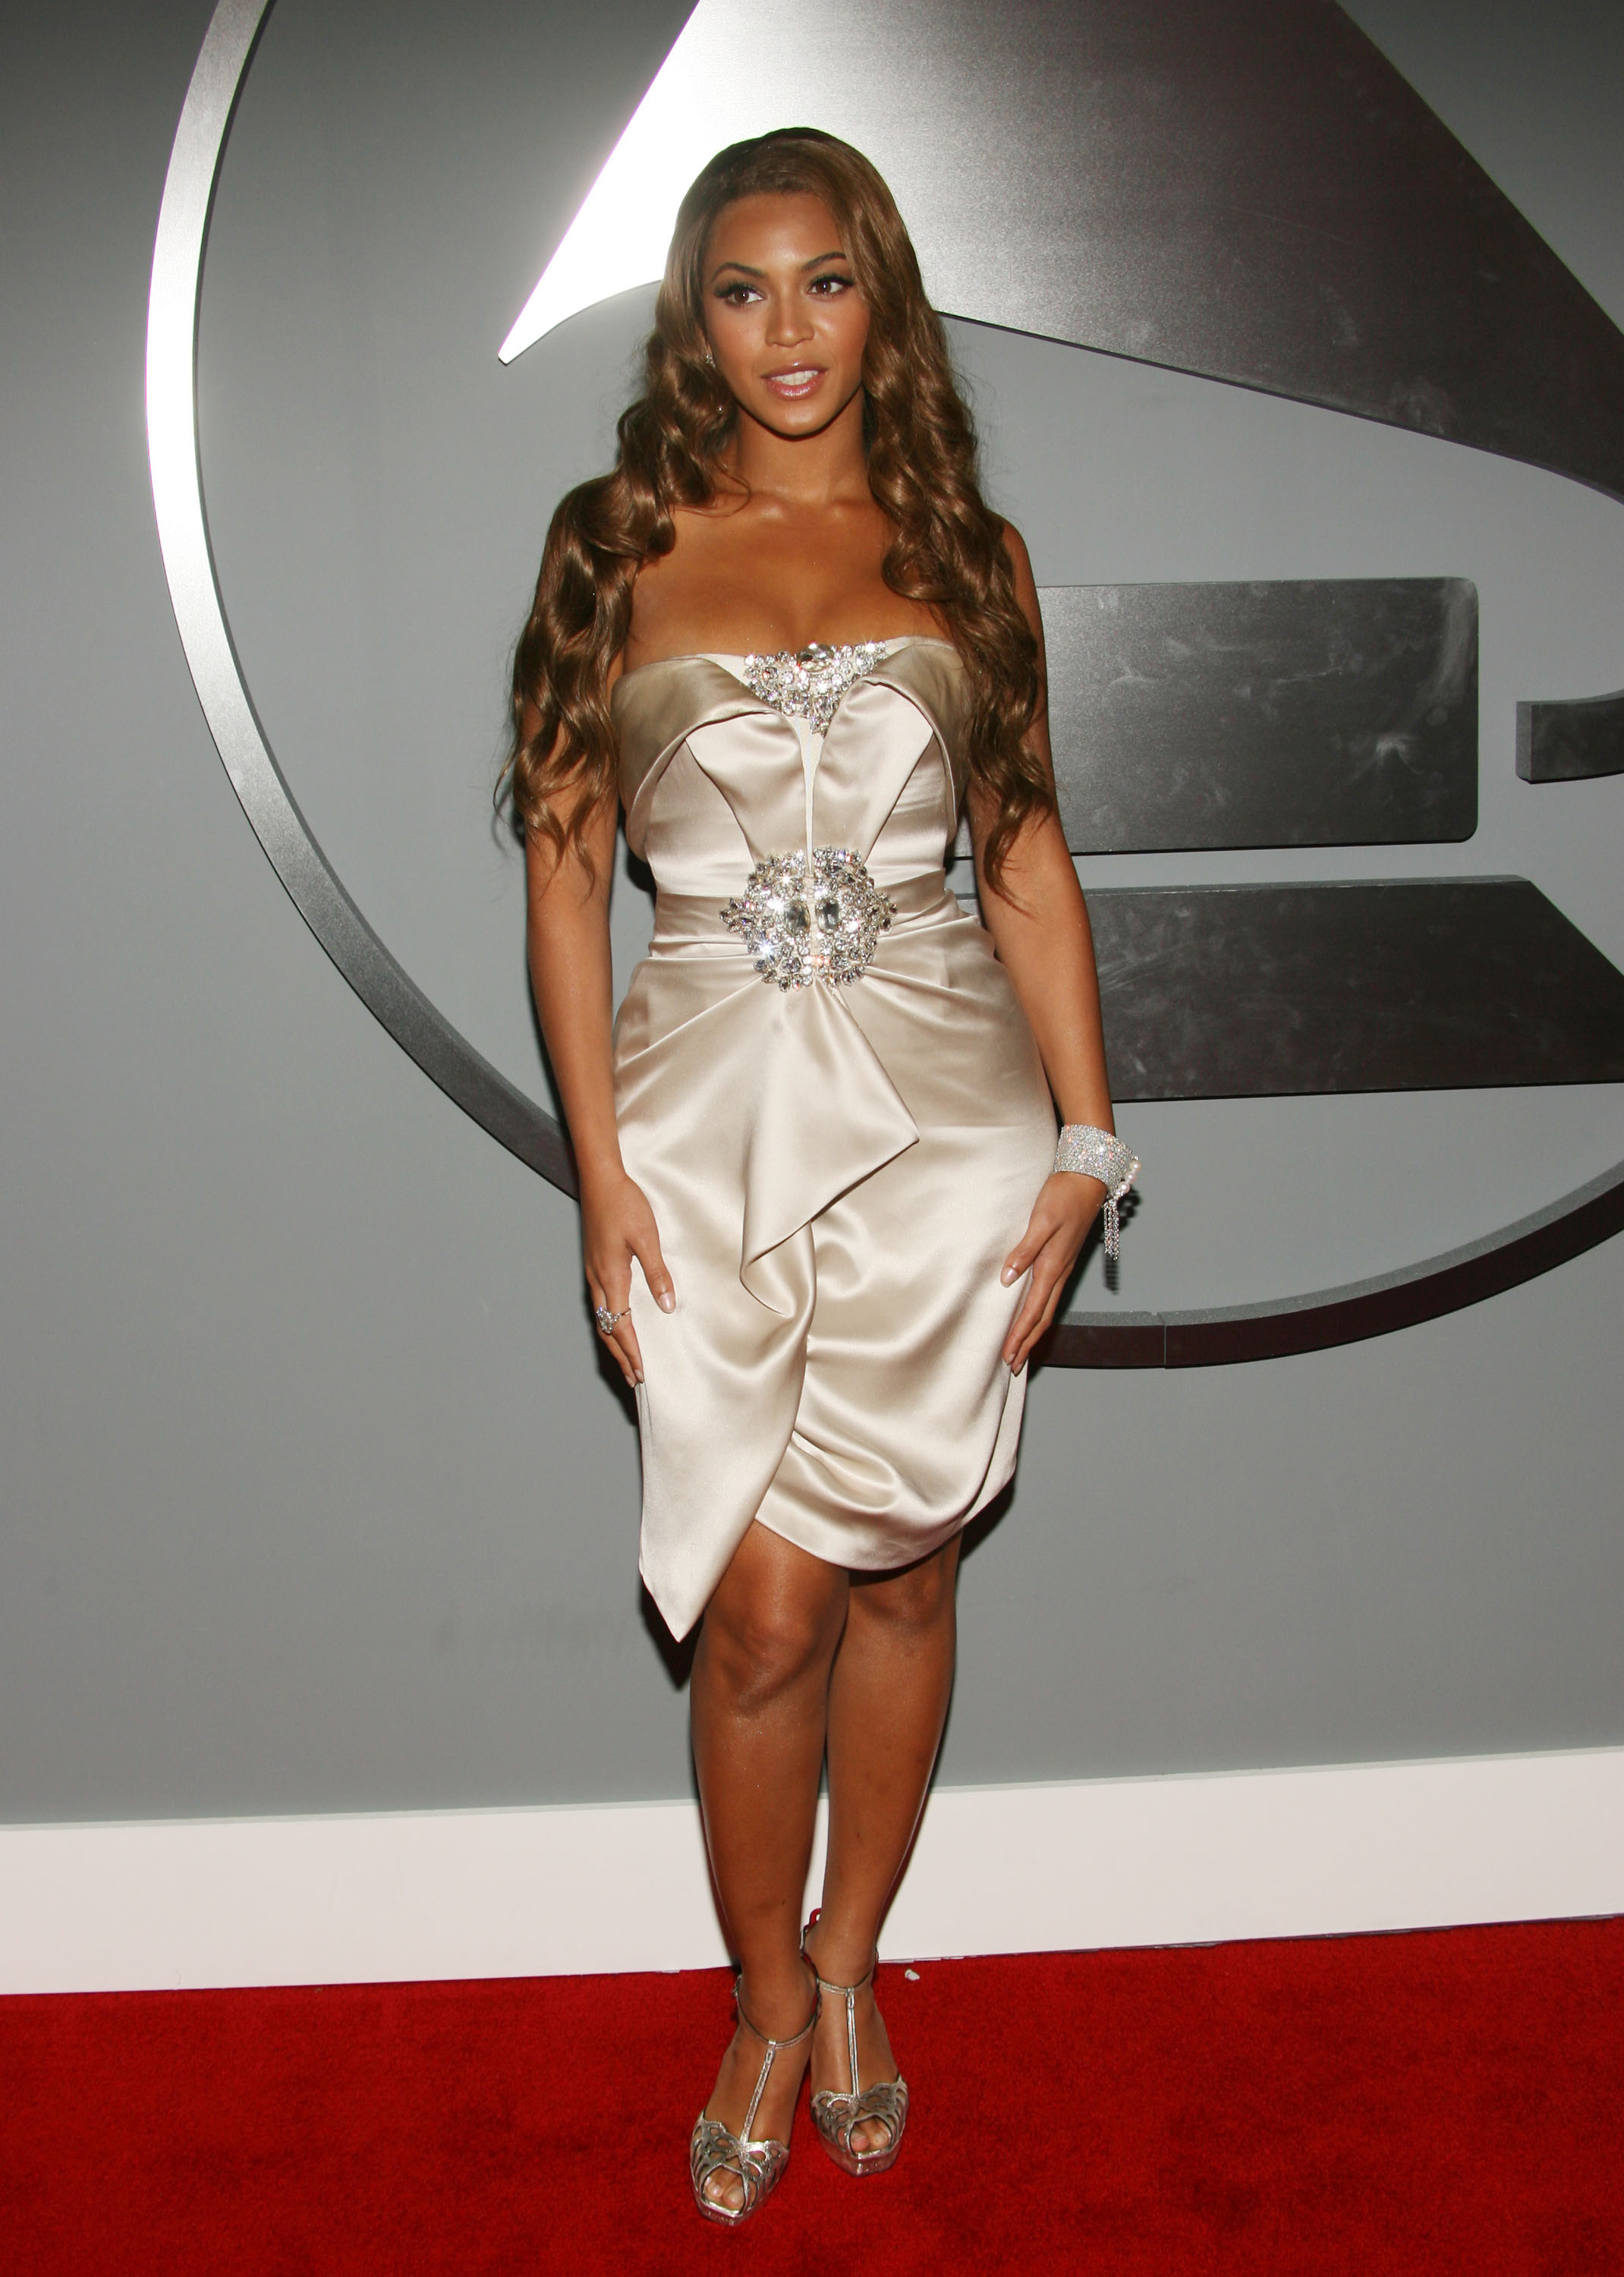 2007: Beyonce's Jaw-Dropping Dress